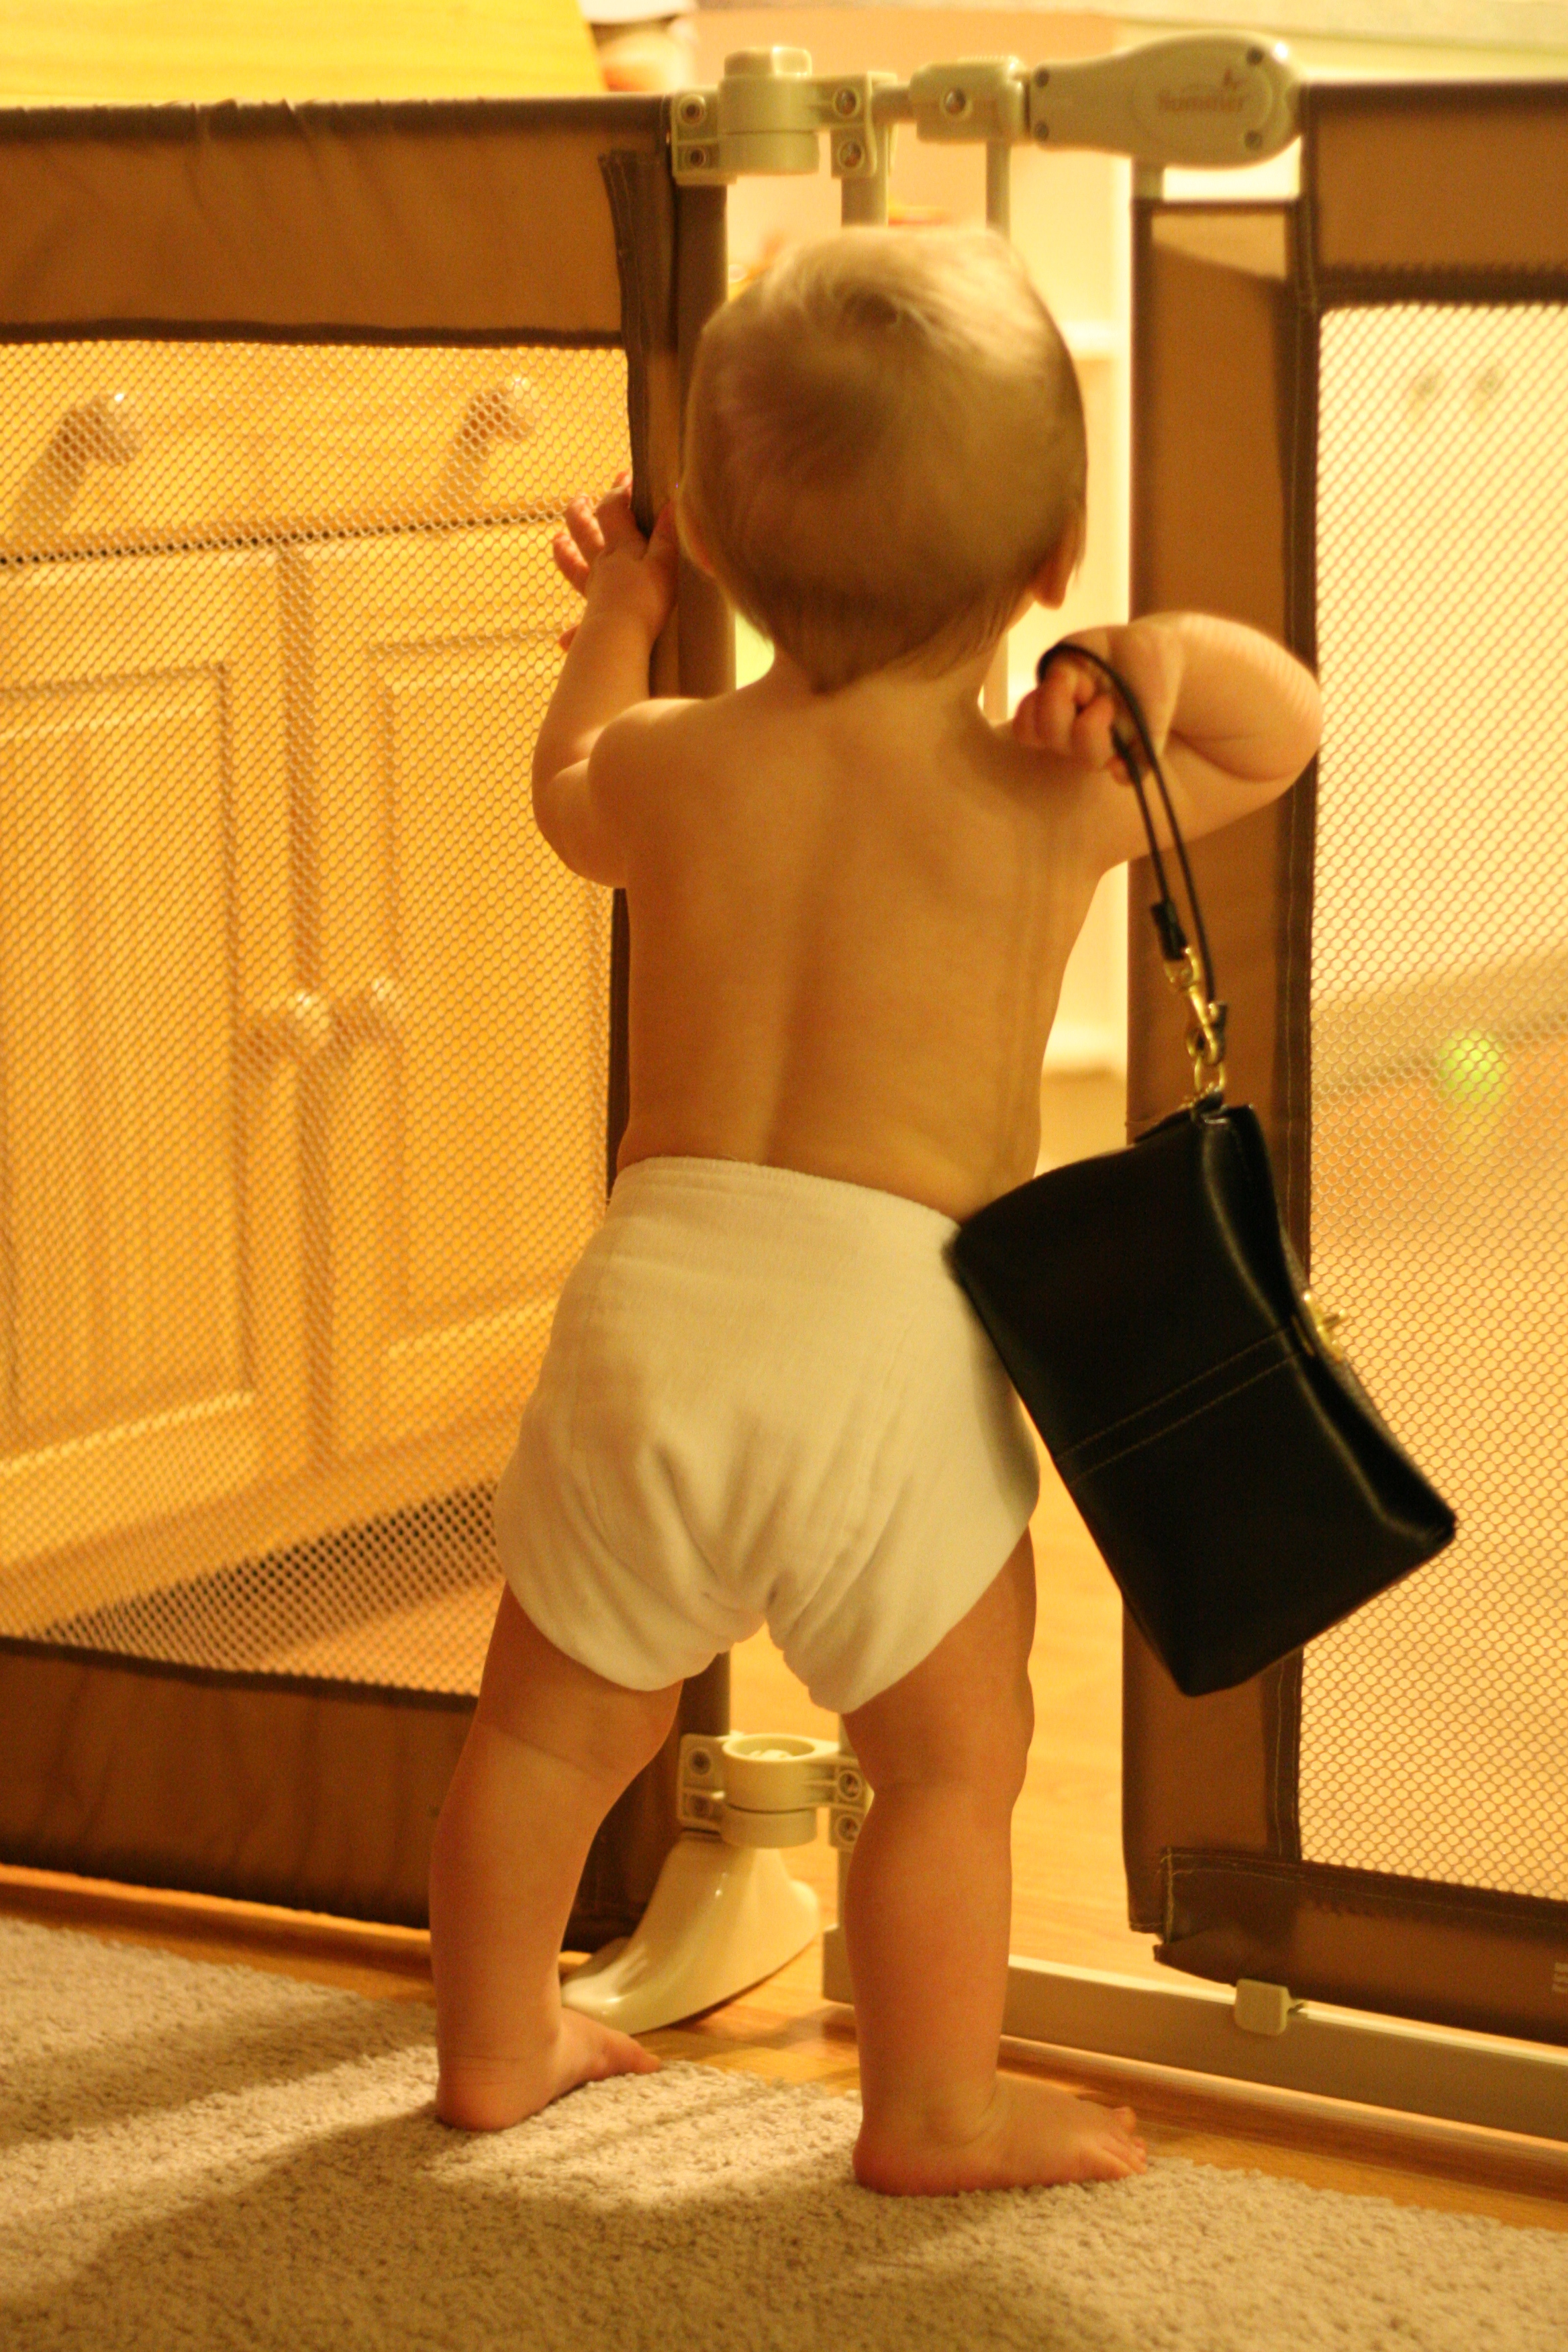 with mommy's purse